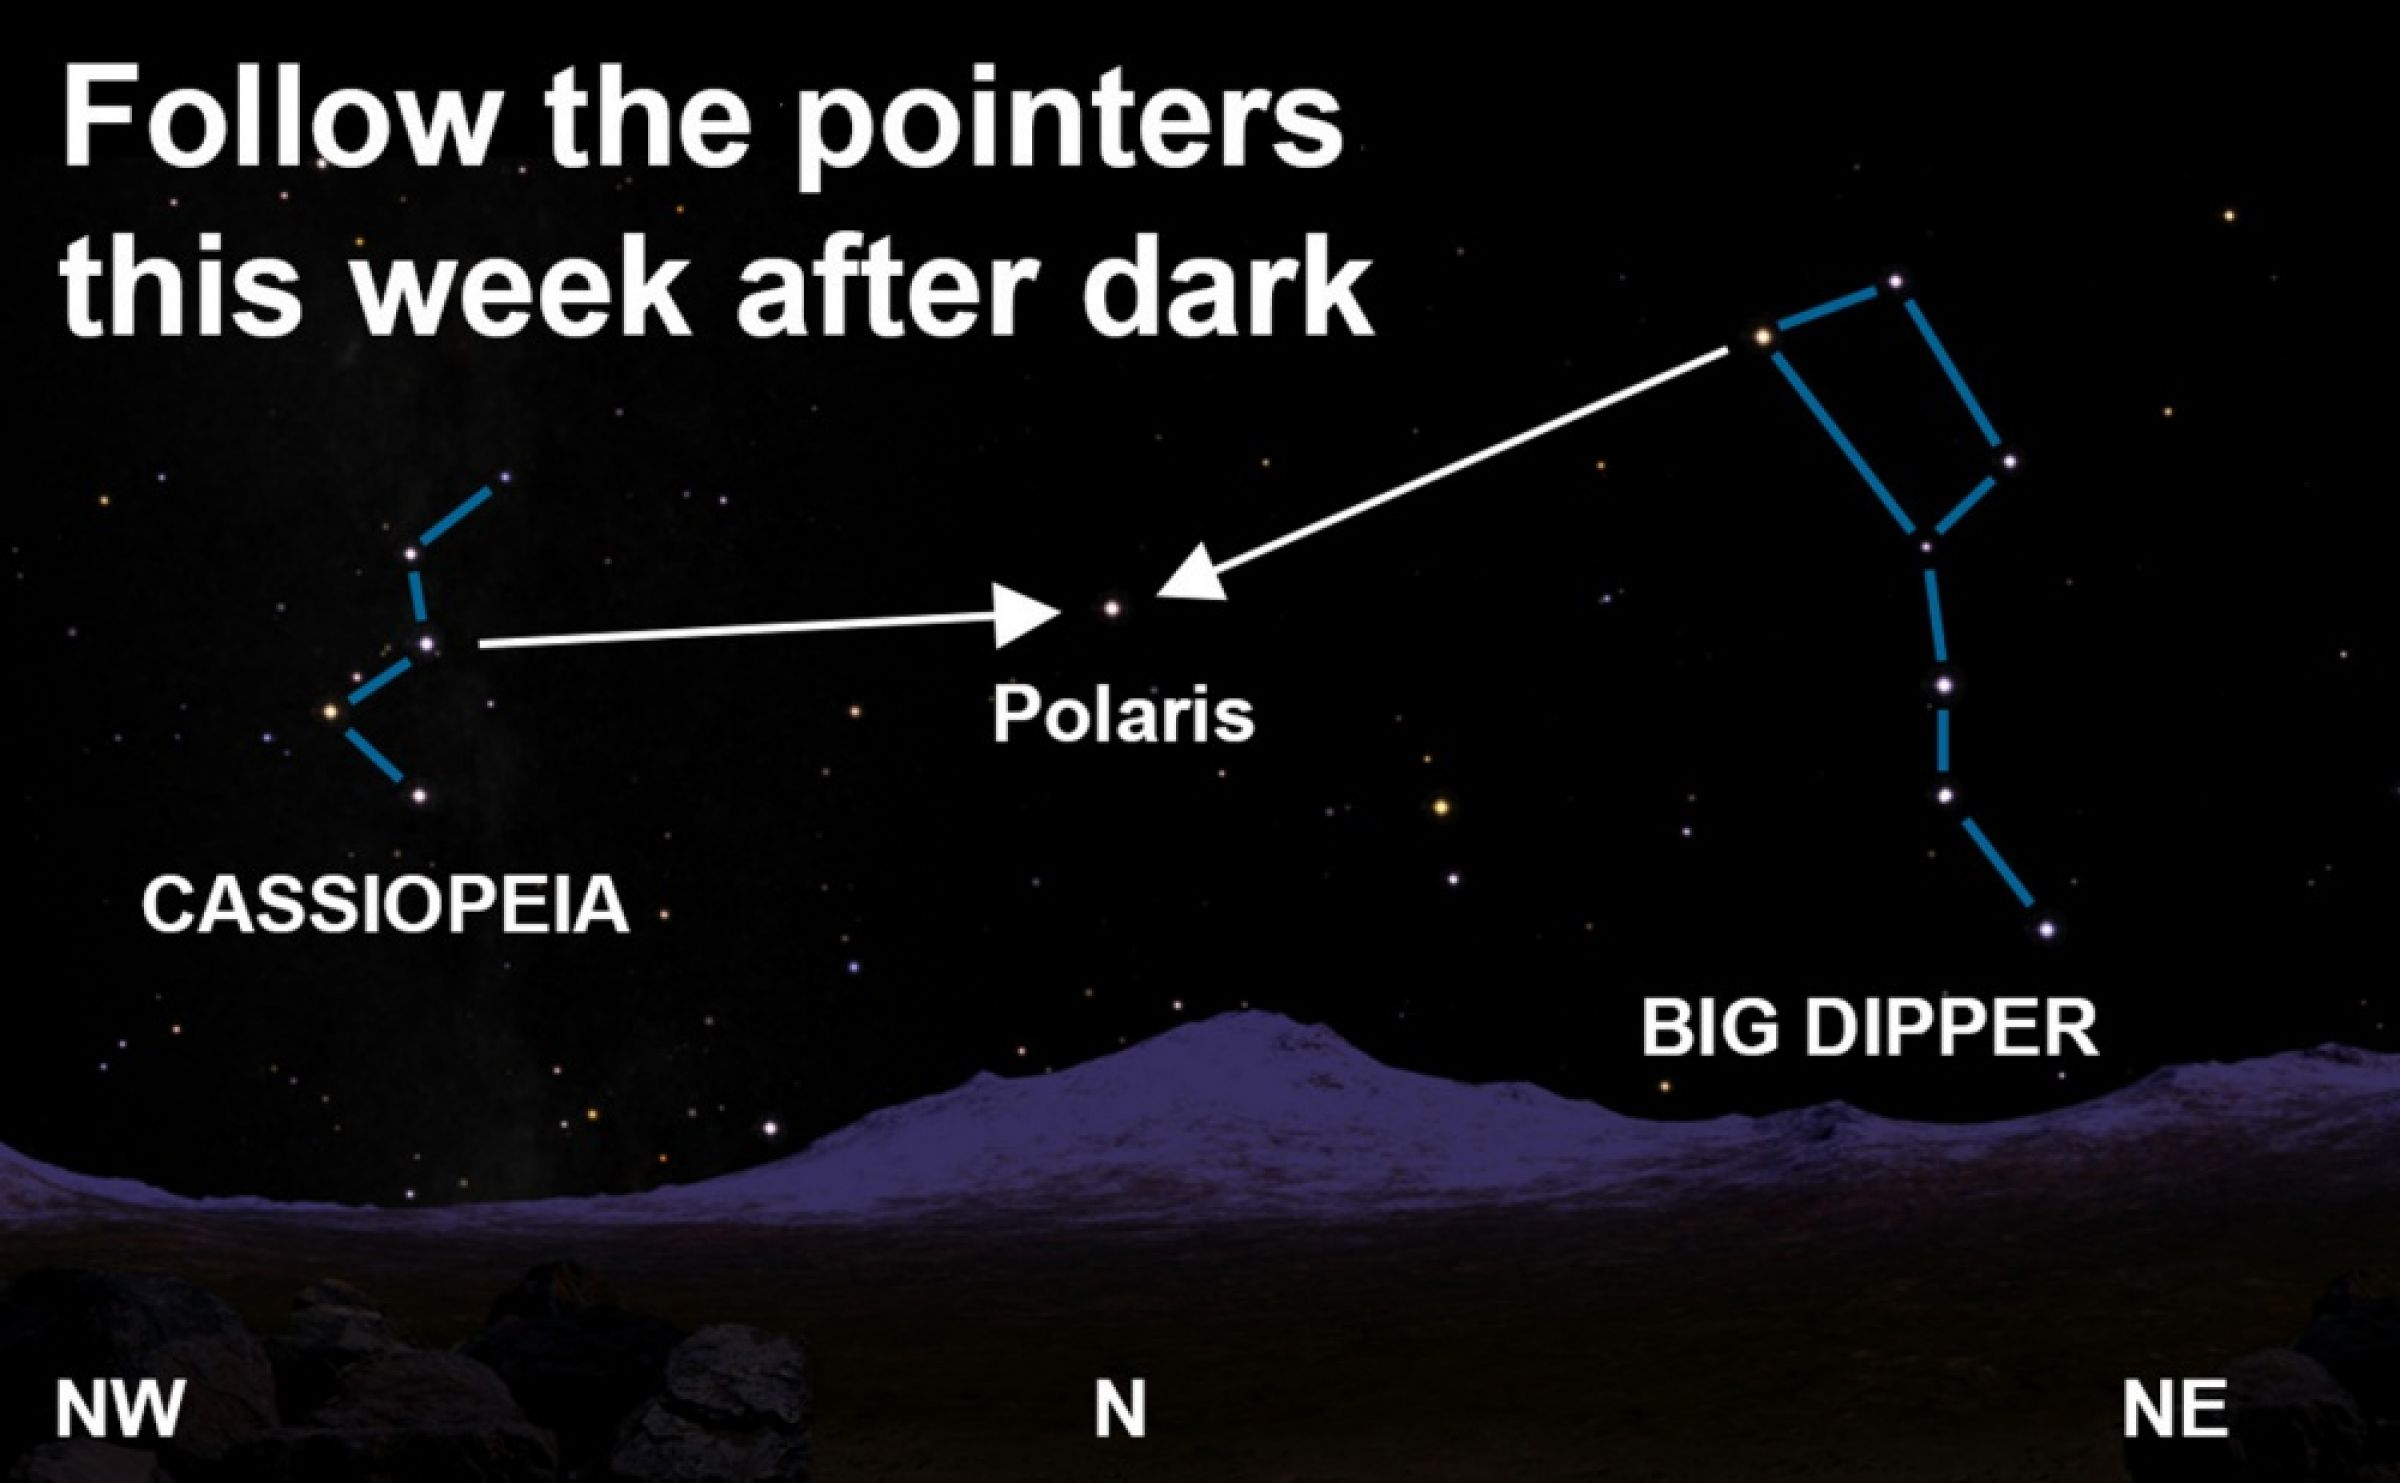 Dennis Mammana How To Use The Big Dipper And Cassiopeia